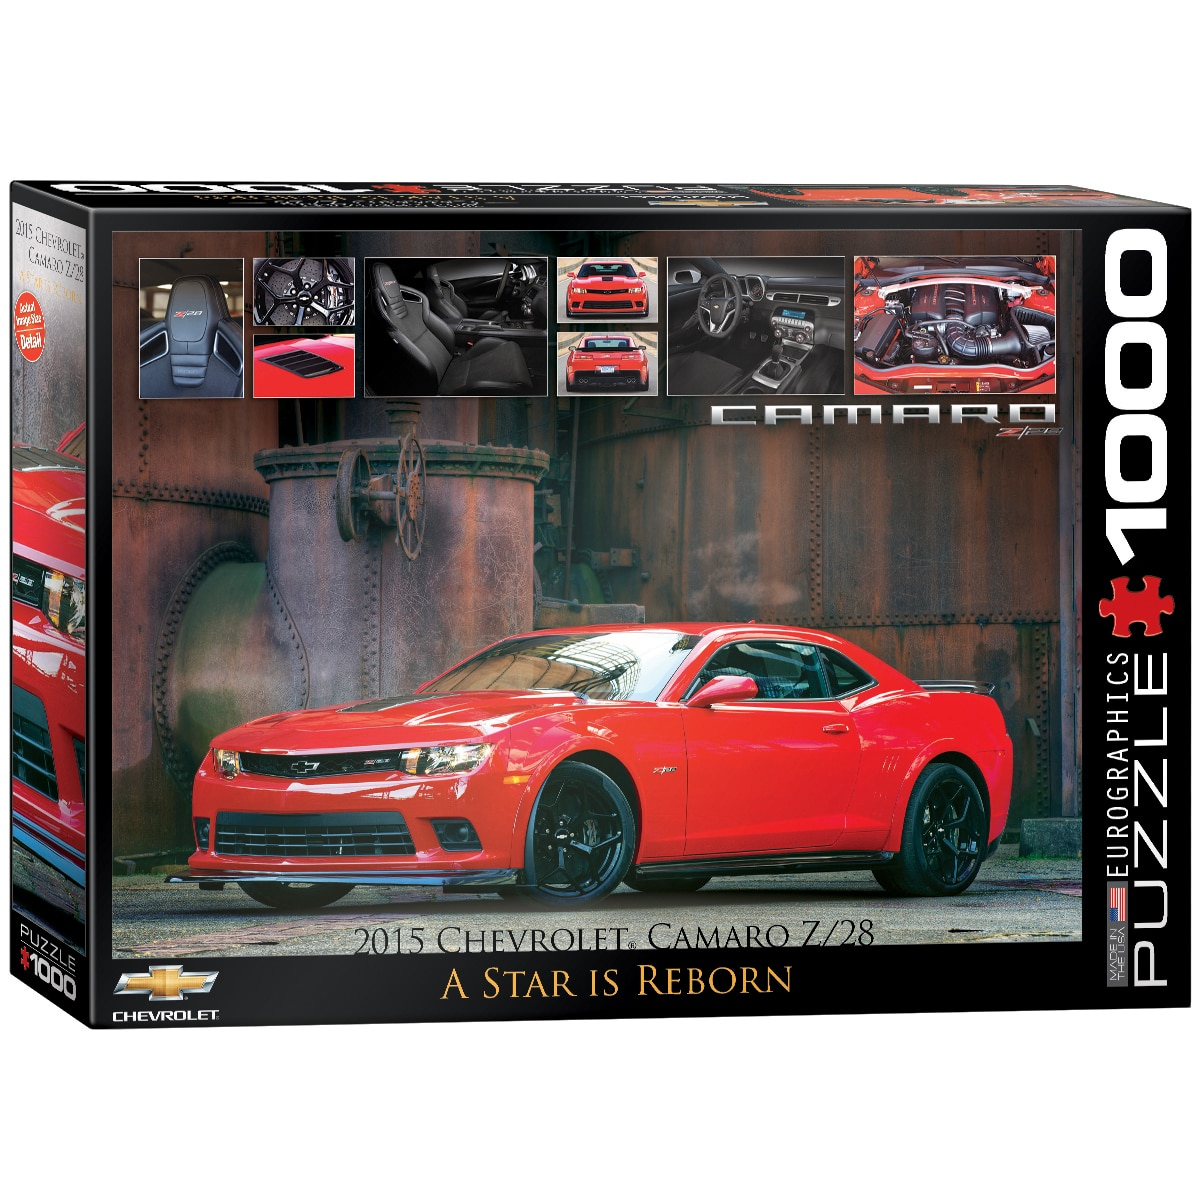 2015 Chevrolet Camaro Z/28: A Star is Reborn - 1000pc Jigsaw Puzzle by Eurographics - image main